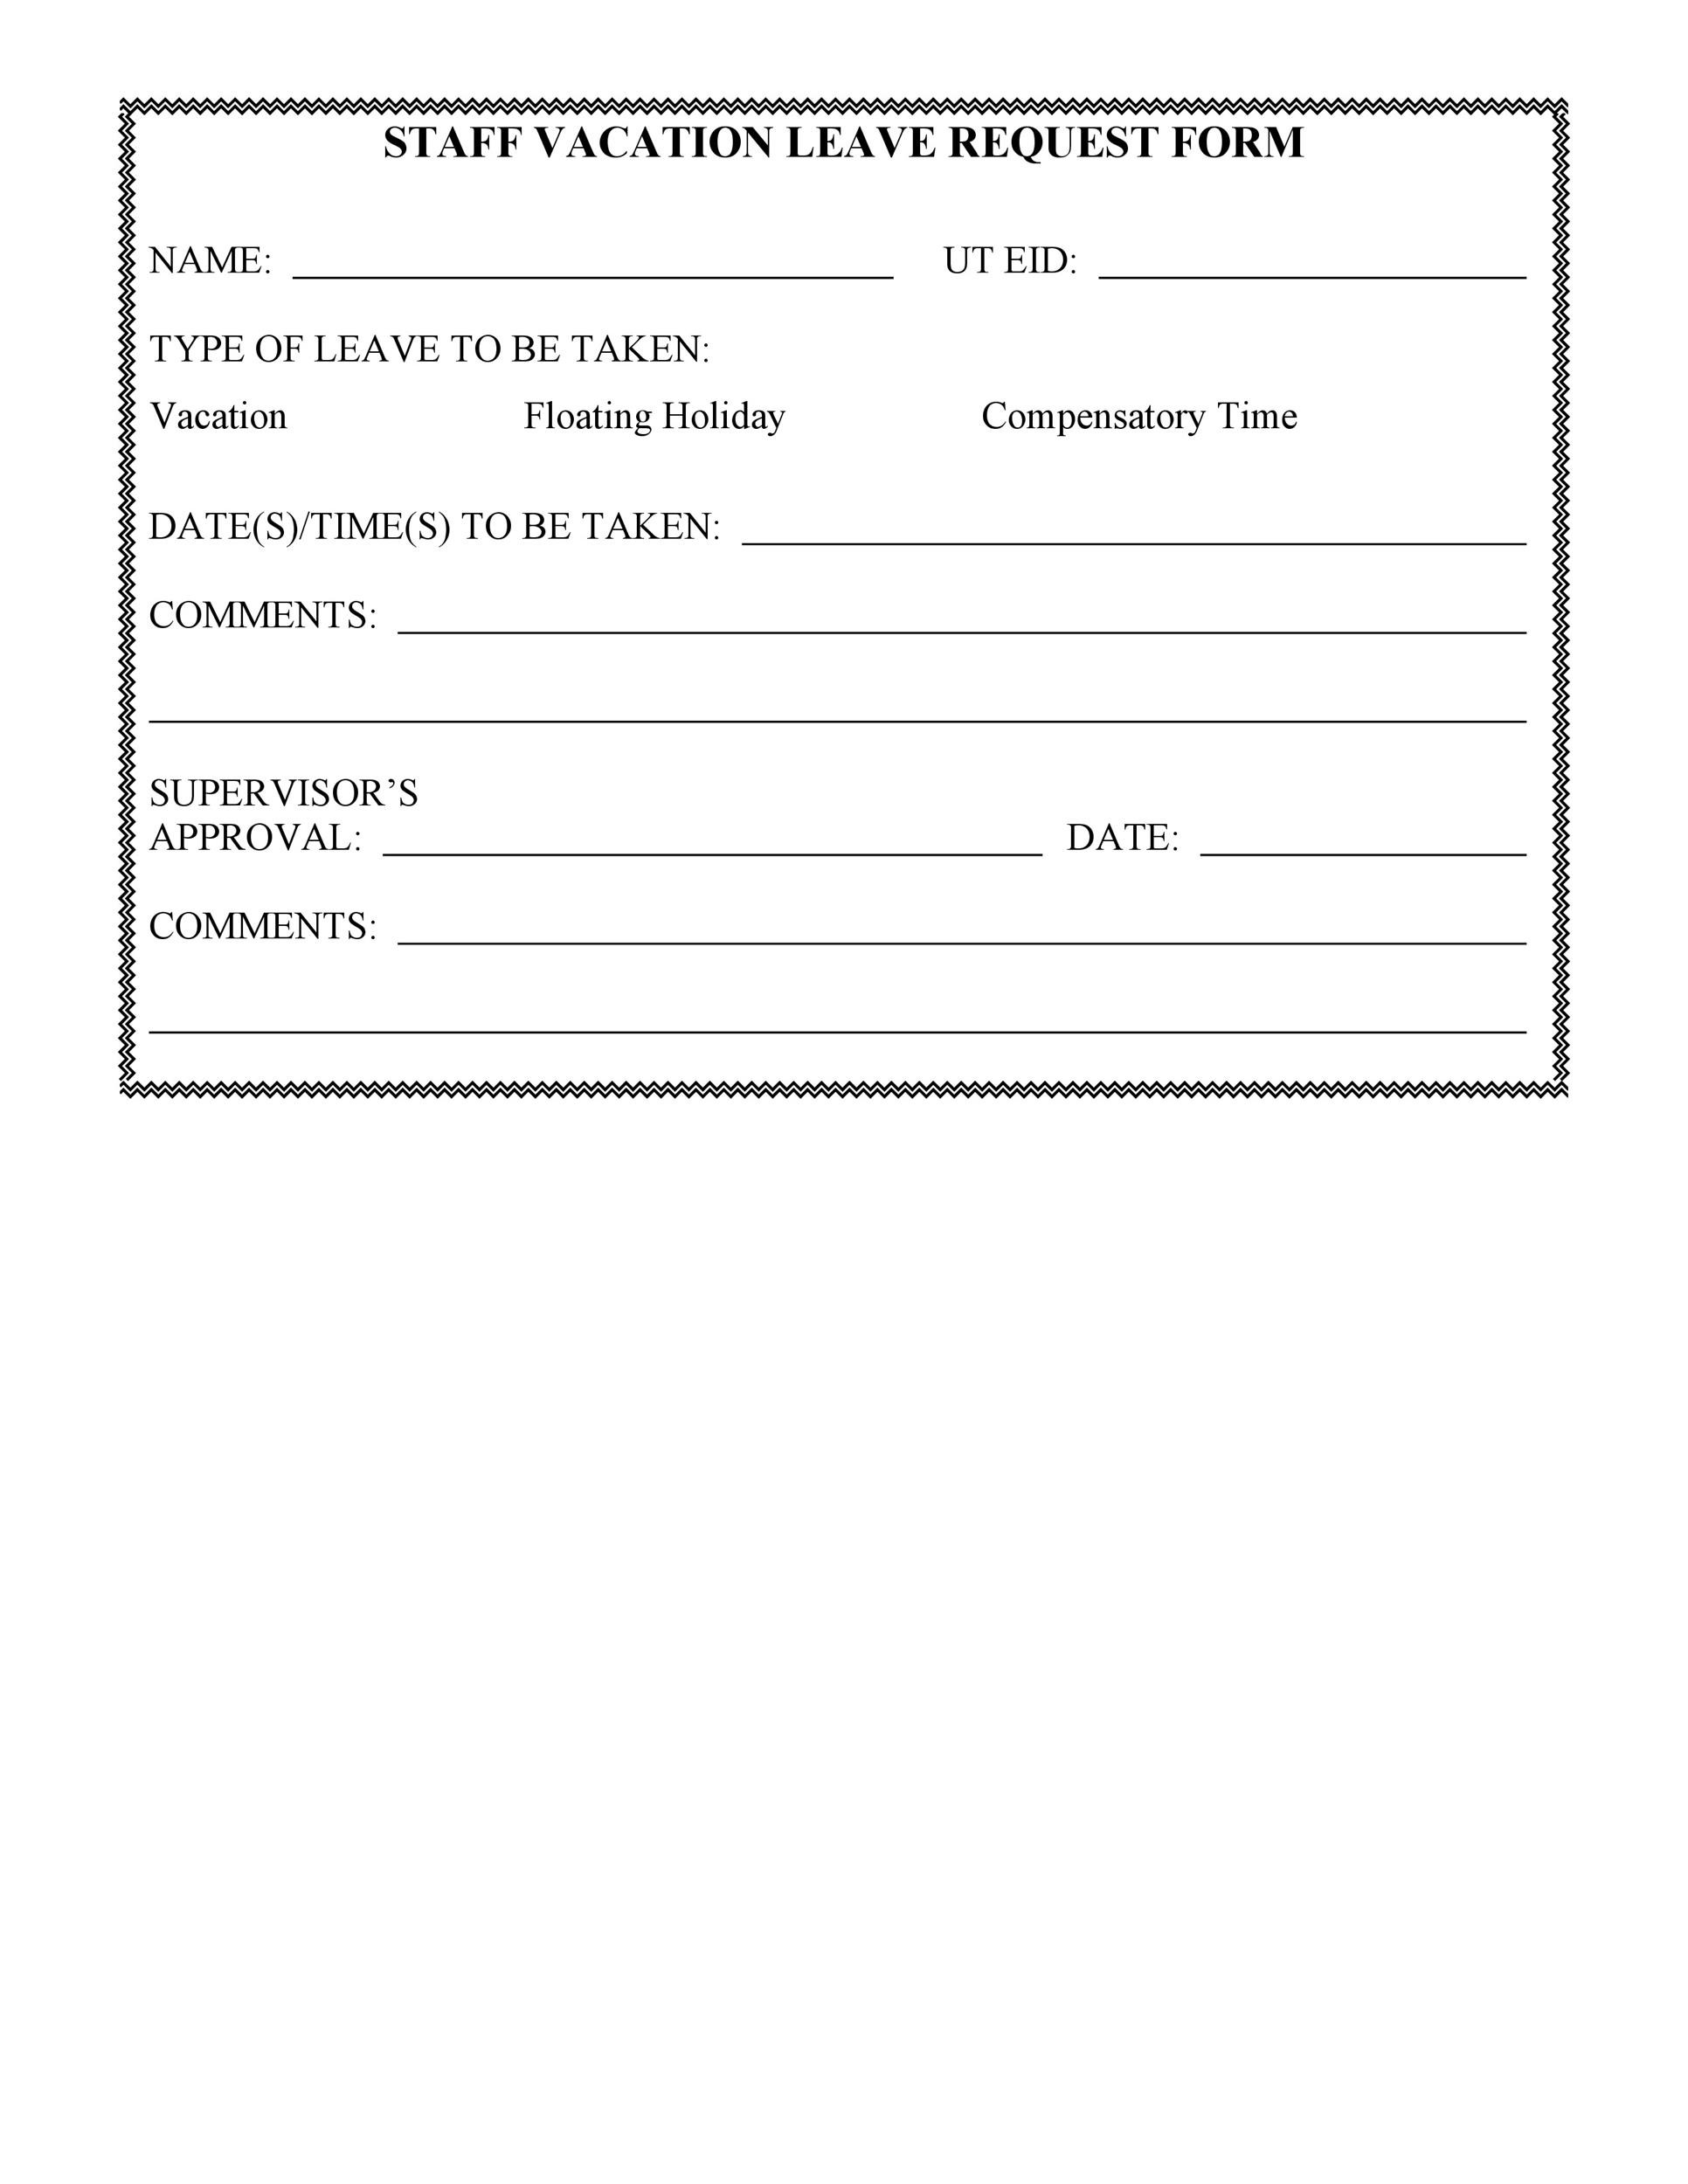 50 Professional Employee Vacation Request Forms Word ᐅ Templatelab